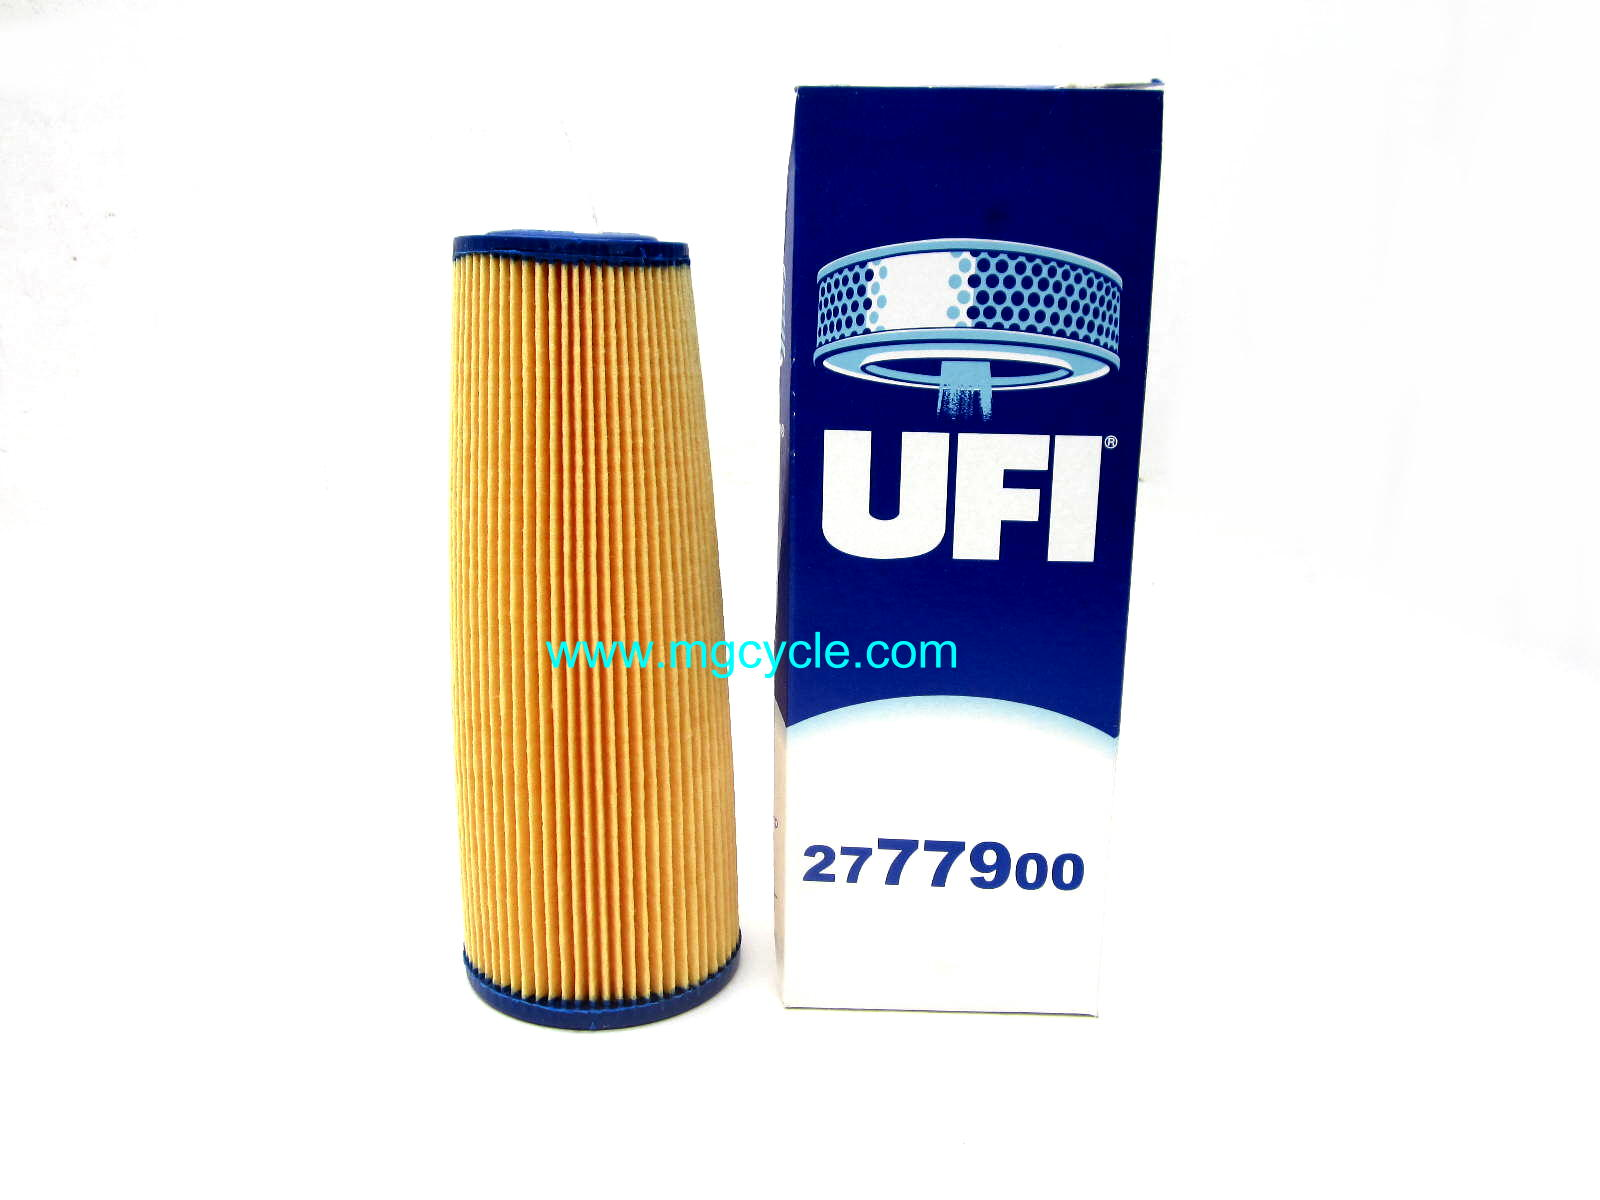 Air filter T3 Convert G5 CX SP V35's V50's GU17113651